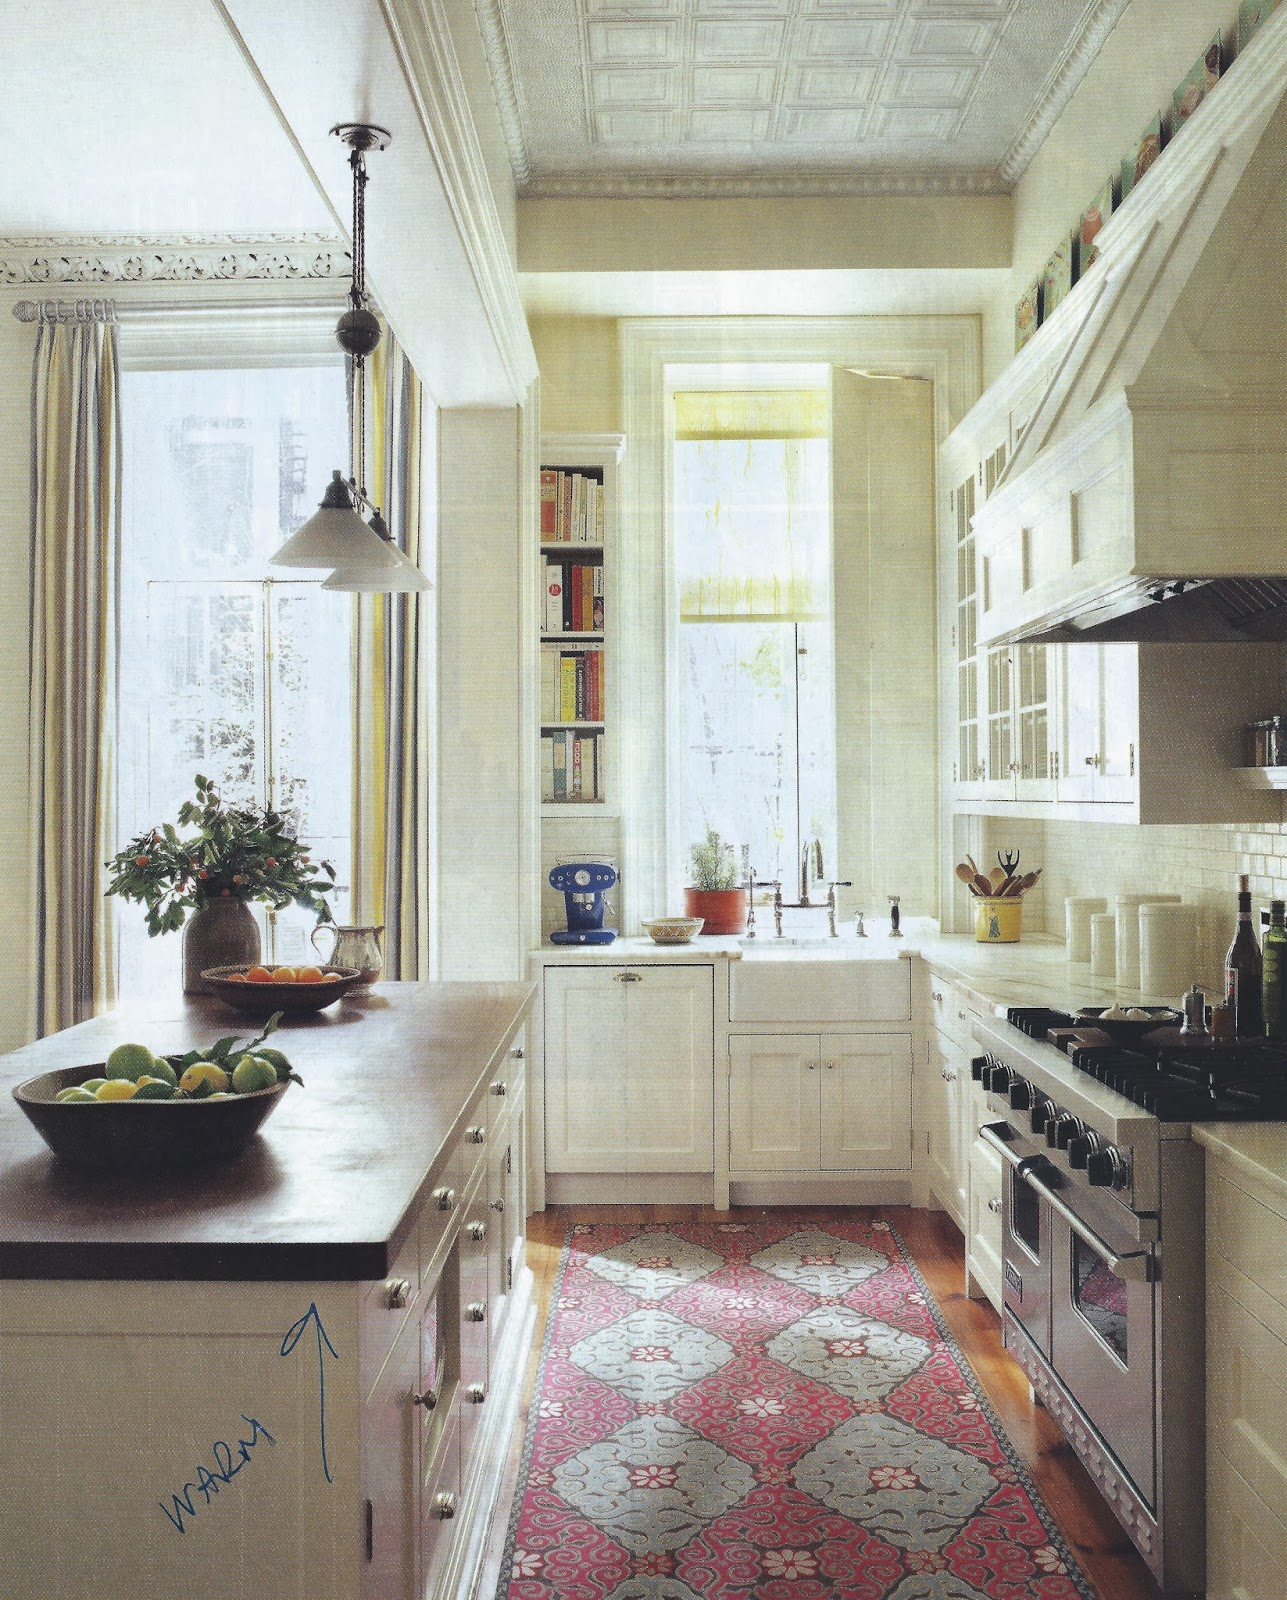 My Kitchen Has Ugly Bathroom Tile: Lucy's Forever Home: February 2014